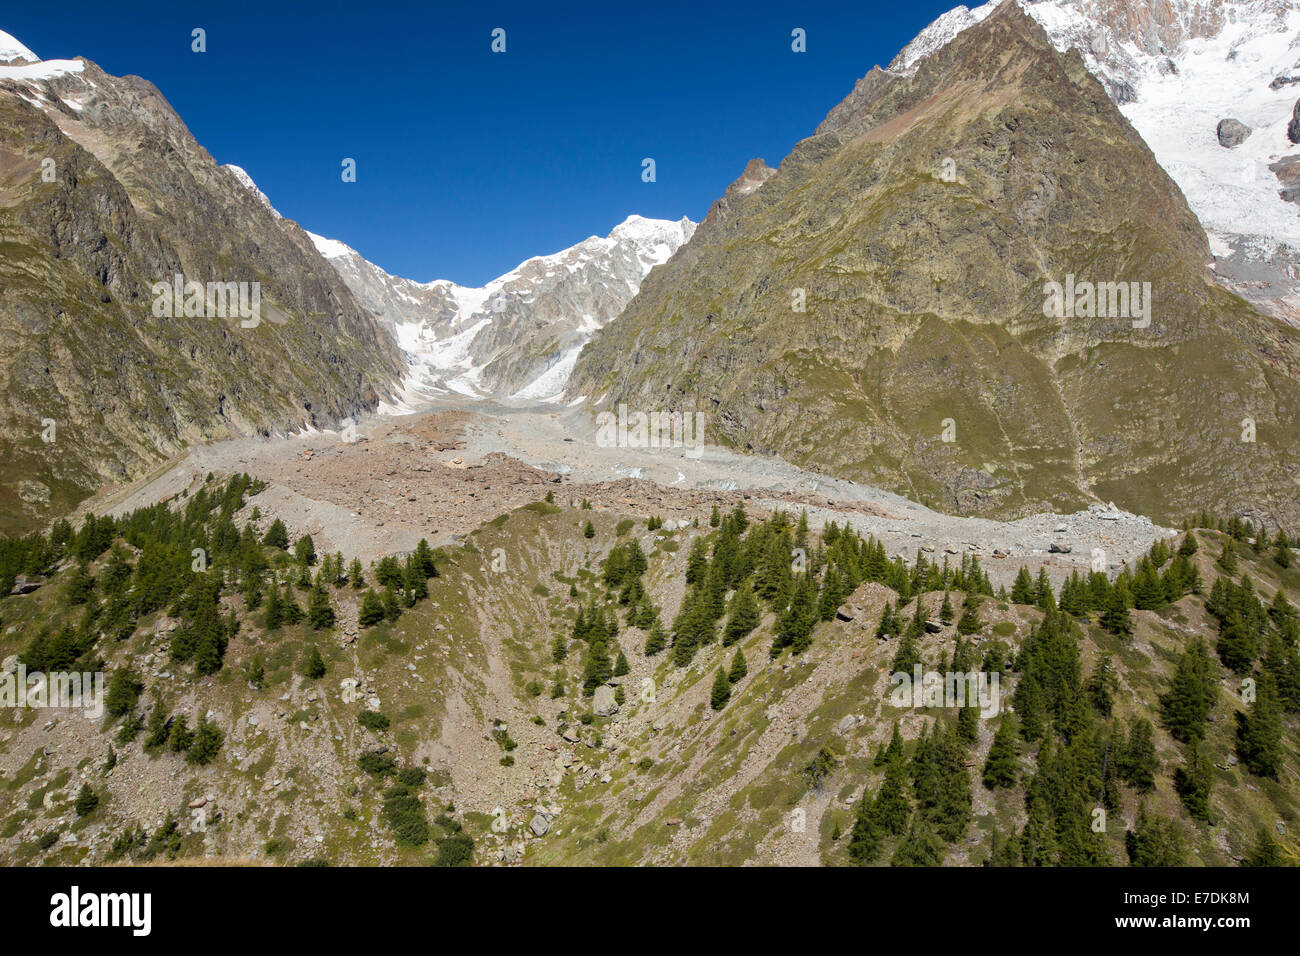 Lateral Moraine on the side of the rapidly retreating Glacier de Miage below Mont Blanc, Italy. - Stock Image